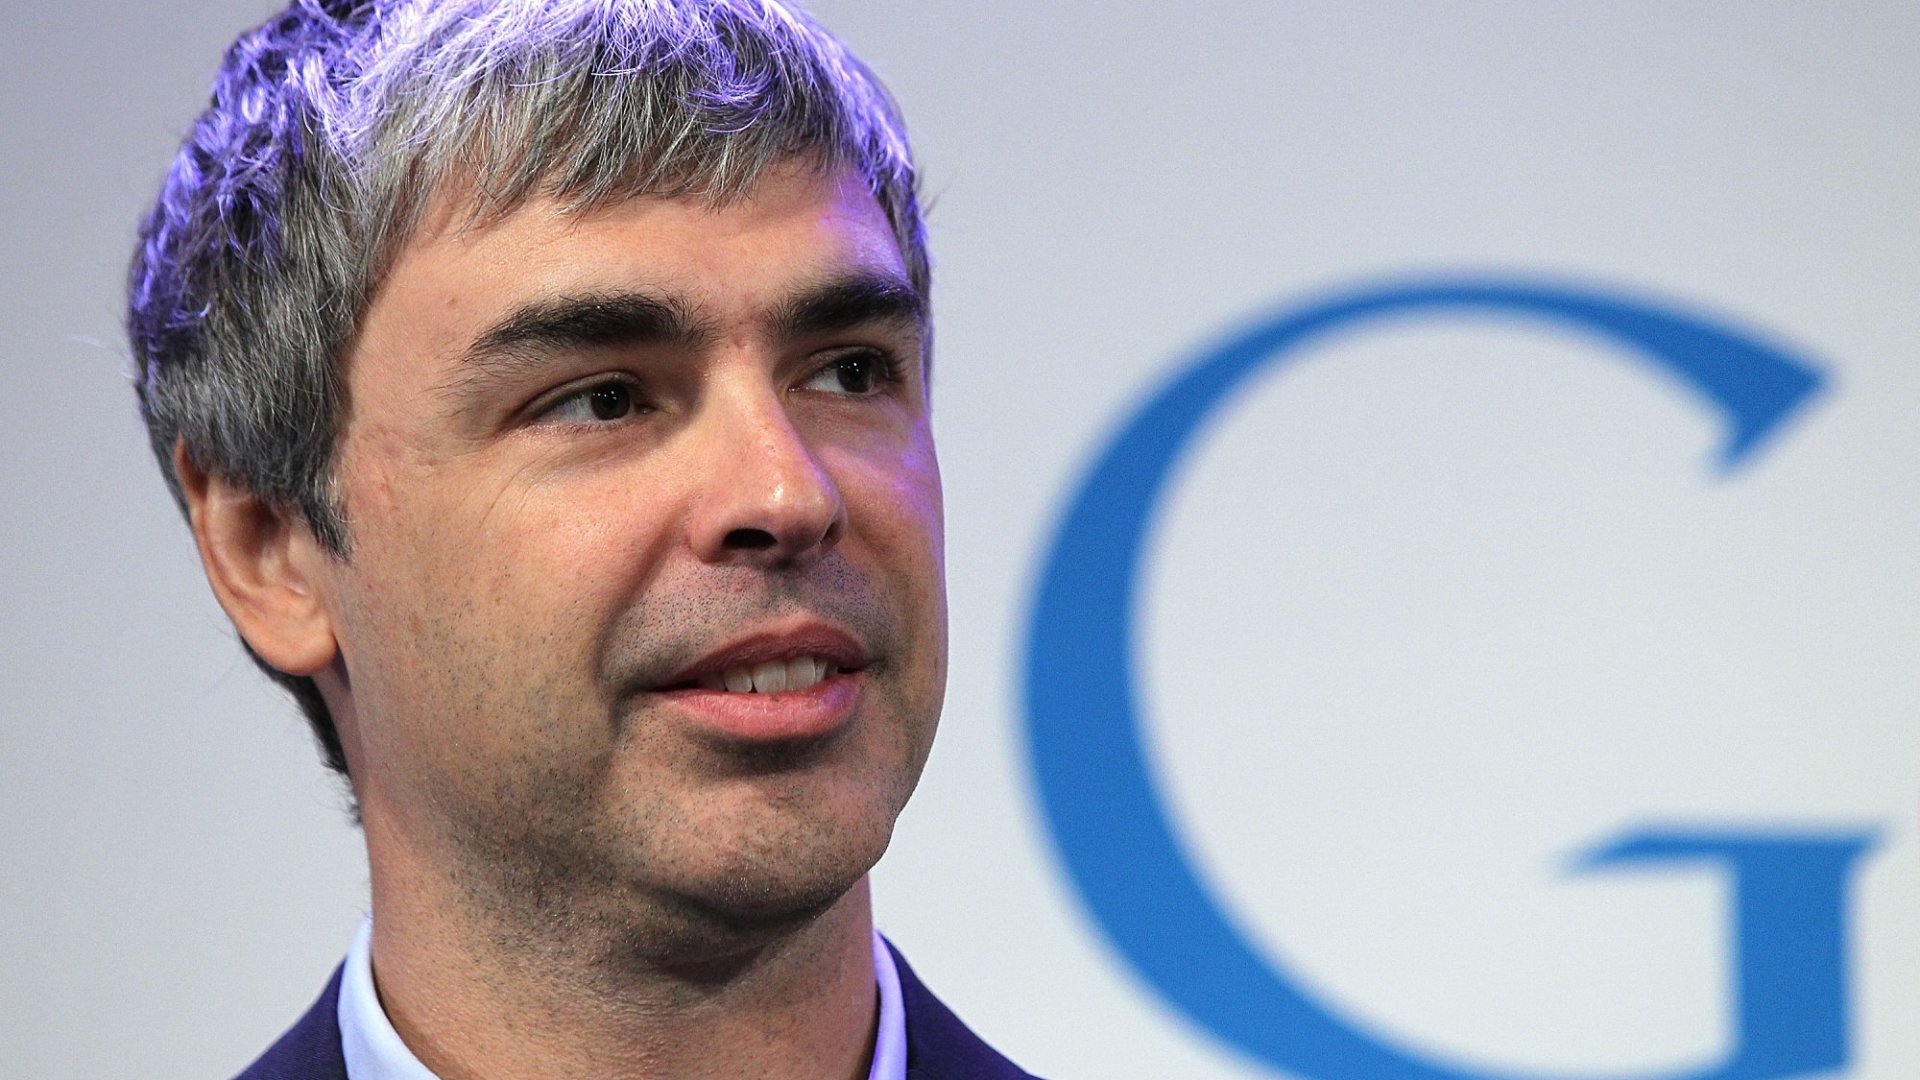 Google's Larry Page Is on a $100 Million Mission to Make Flying Cars a Reality